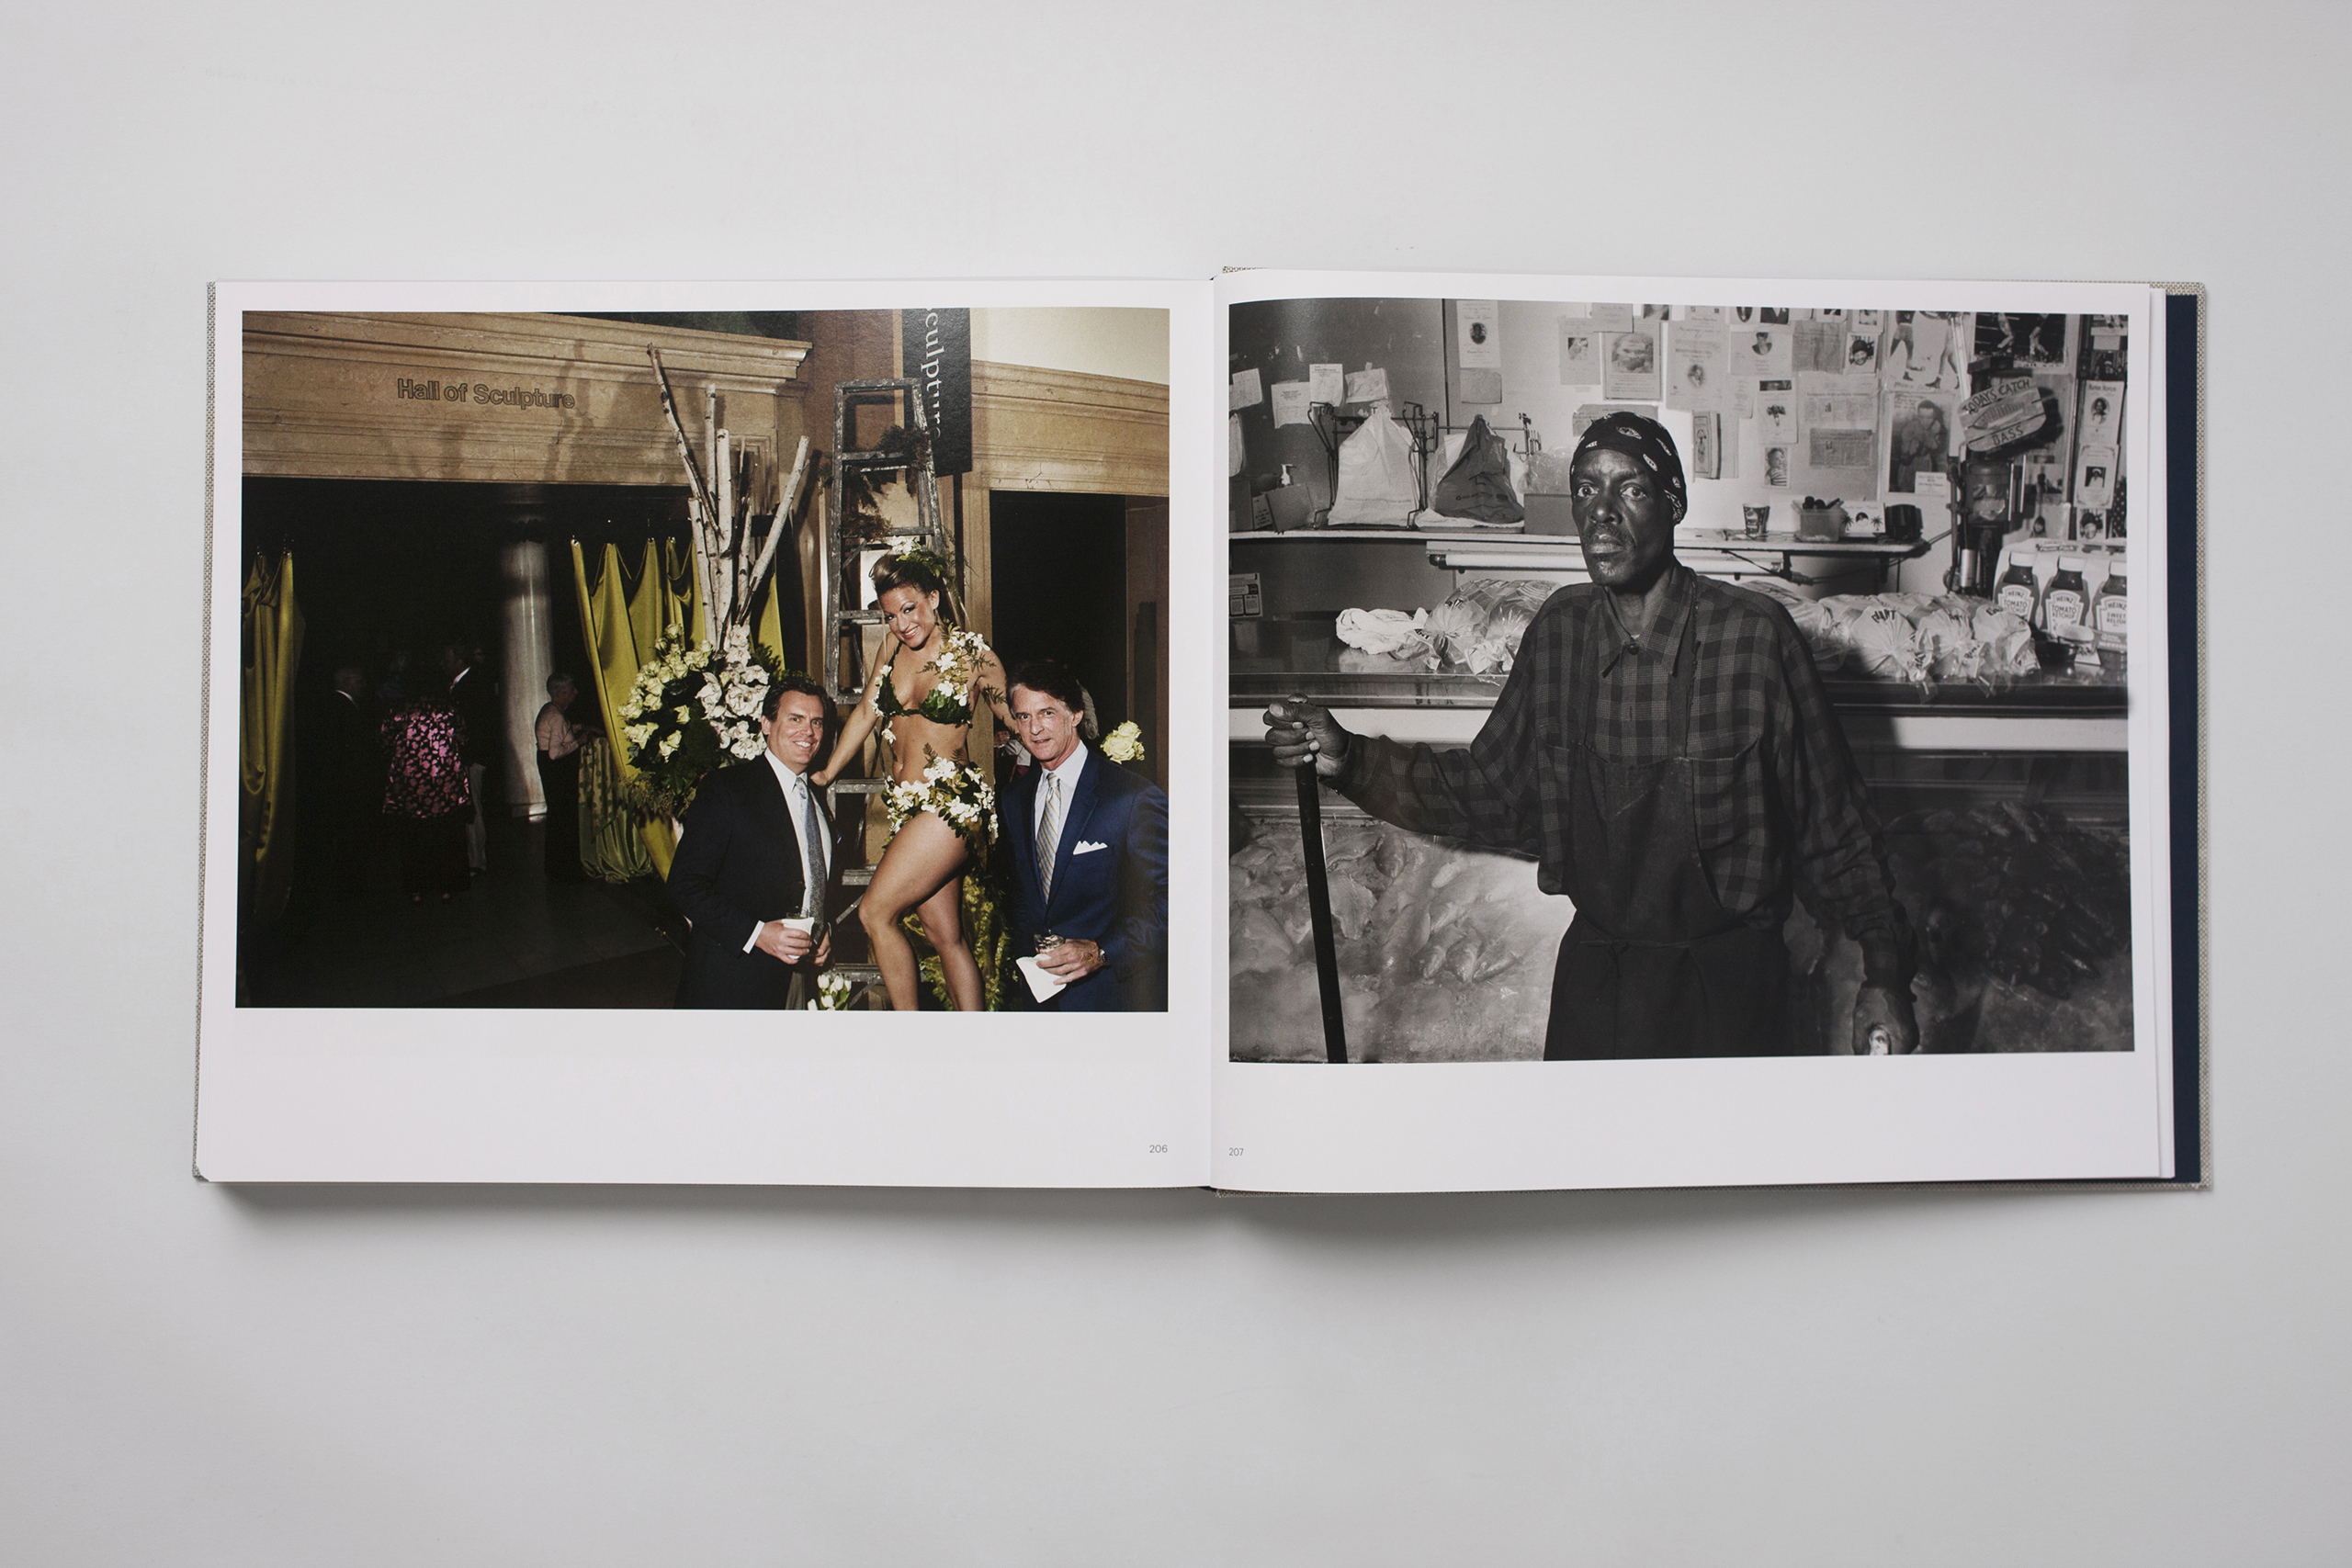 Selected by writer and publisher Jeffrey Ladd:  The photographic books of the UK-based artist Mark Neville are not usually offered for public sale. Instead, he distributes thousands of free copies to the close-knit communities he collaborates with and photographs. Mark Neville: Fancy Pictures from Steidl is a much-needed mid-career survey into the UK's most interesting contemporary social documentarian.""